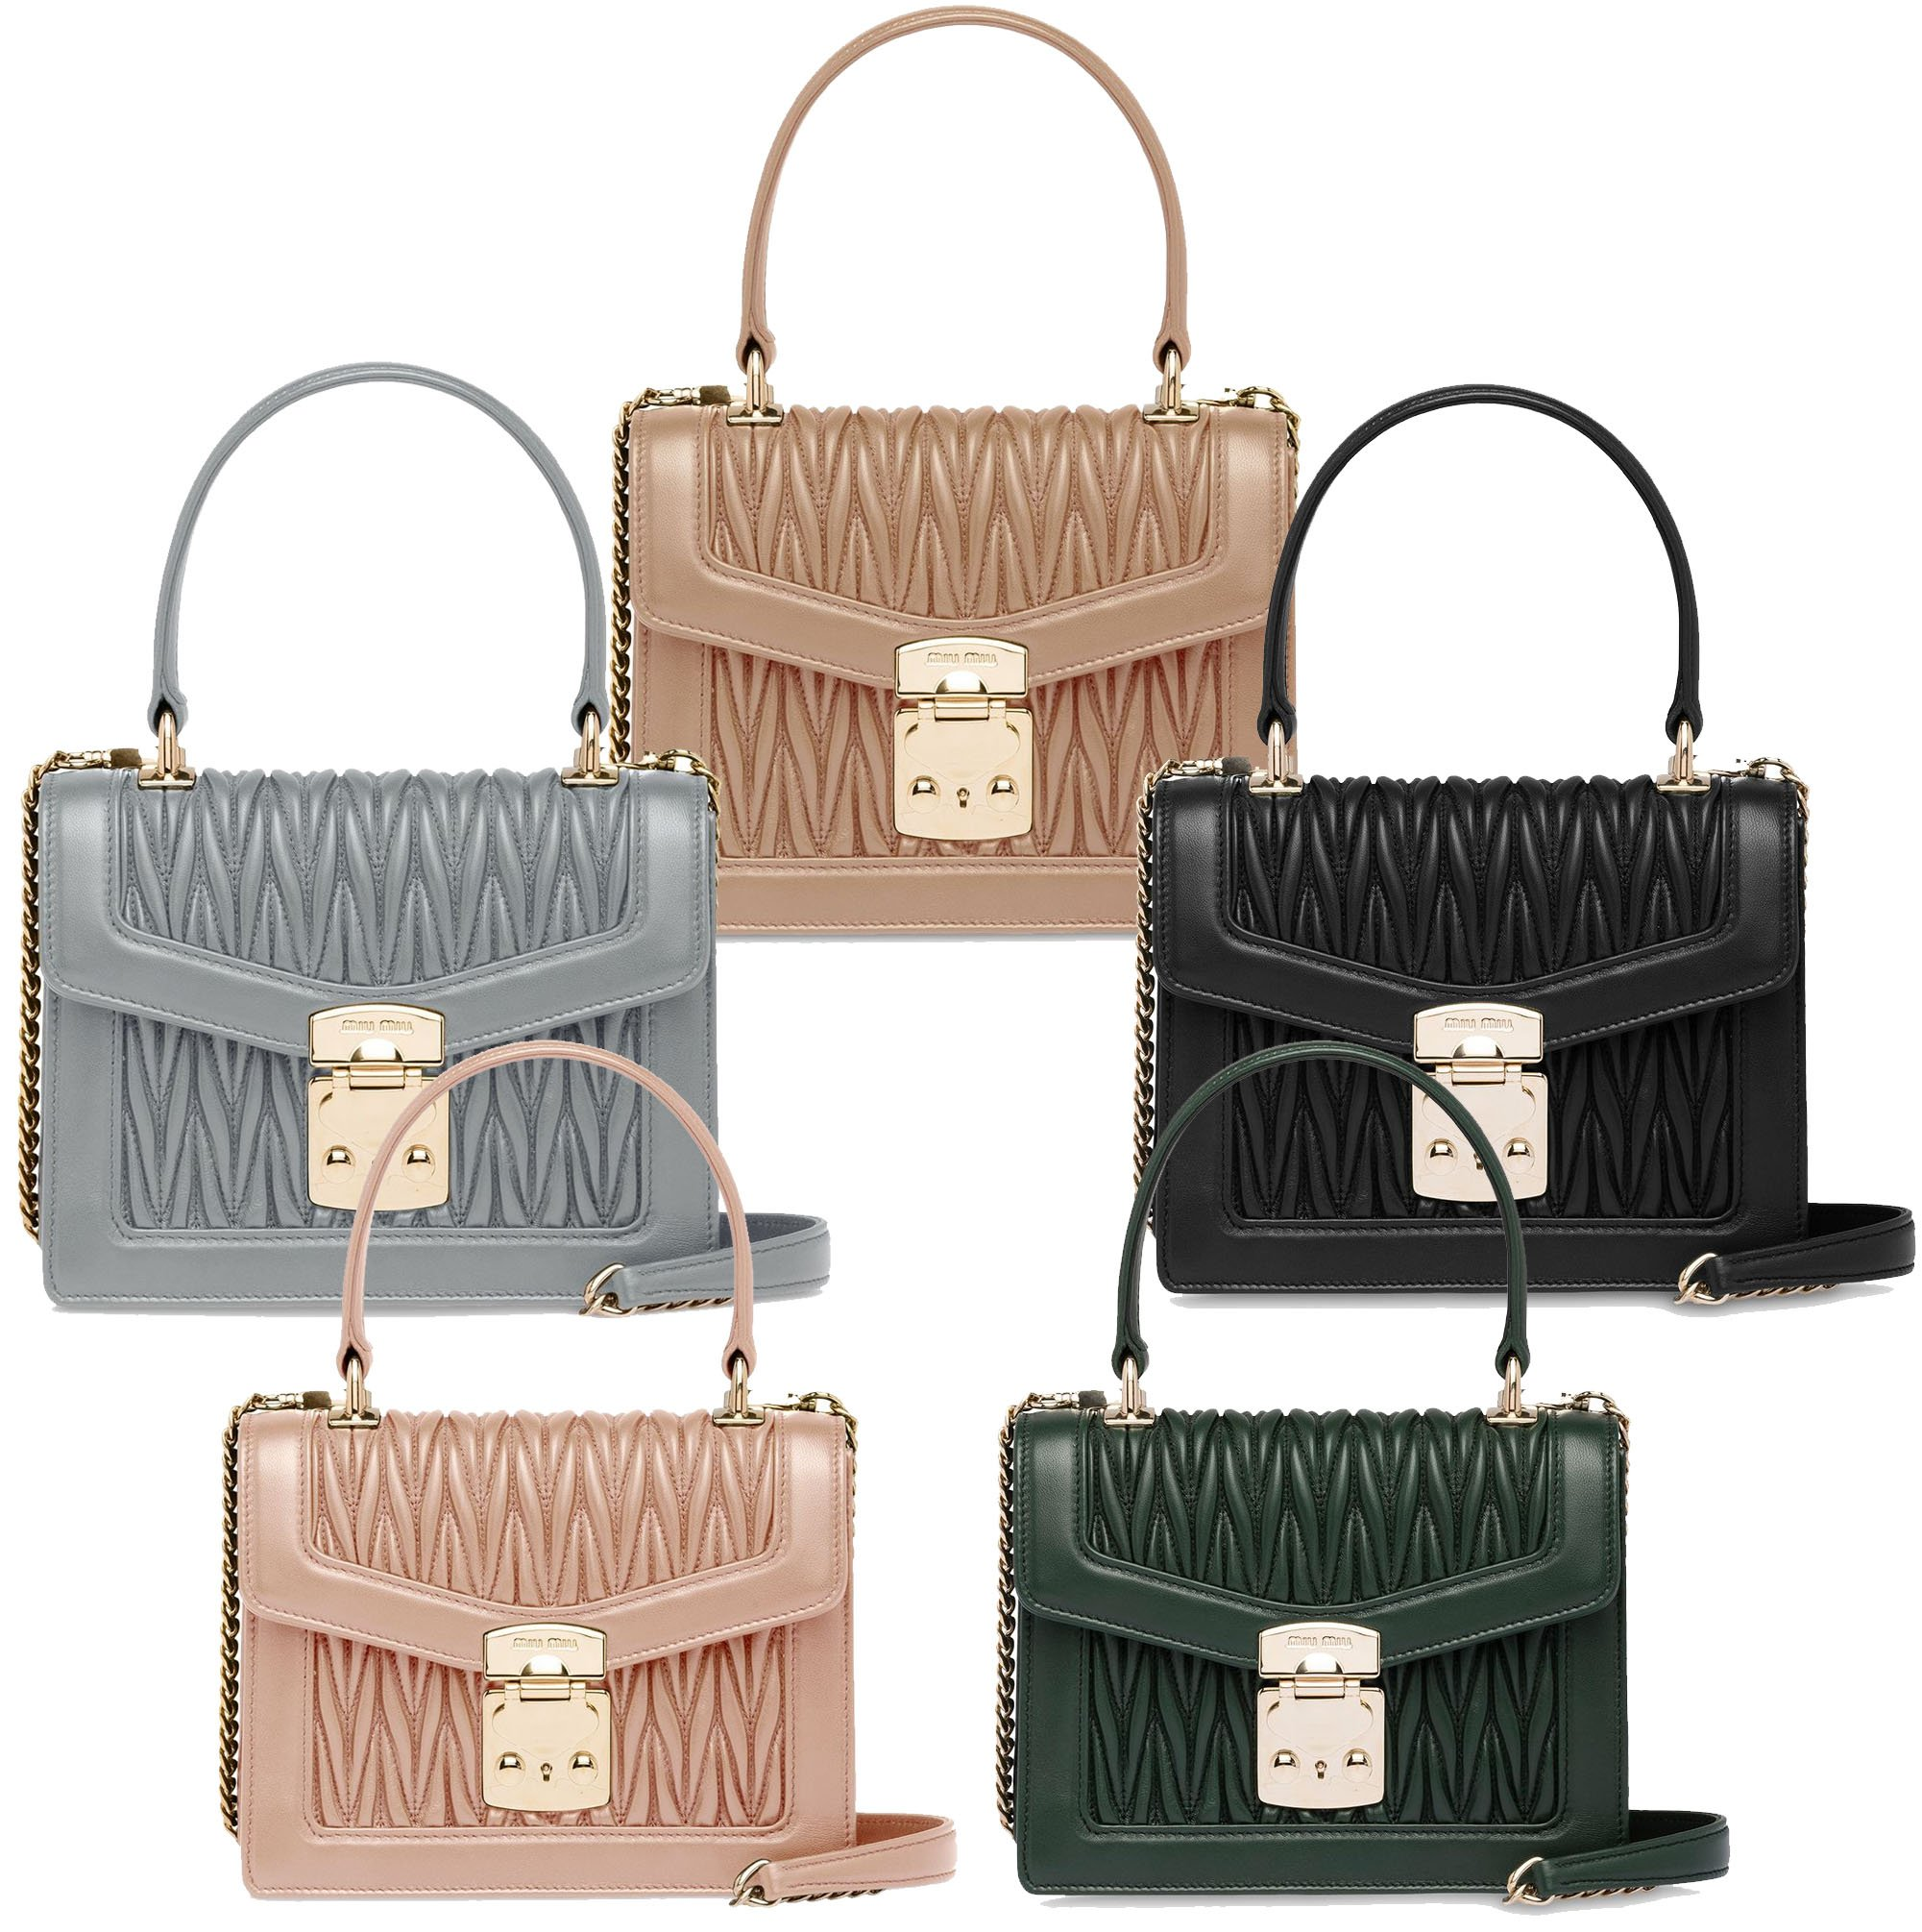 The Miu Confidential is a sophisticated style that's perfect for grown-ups